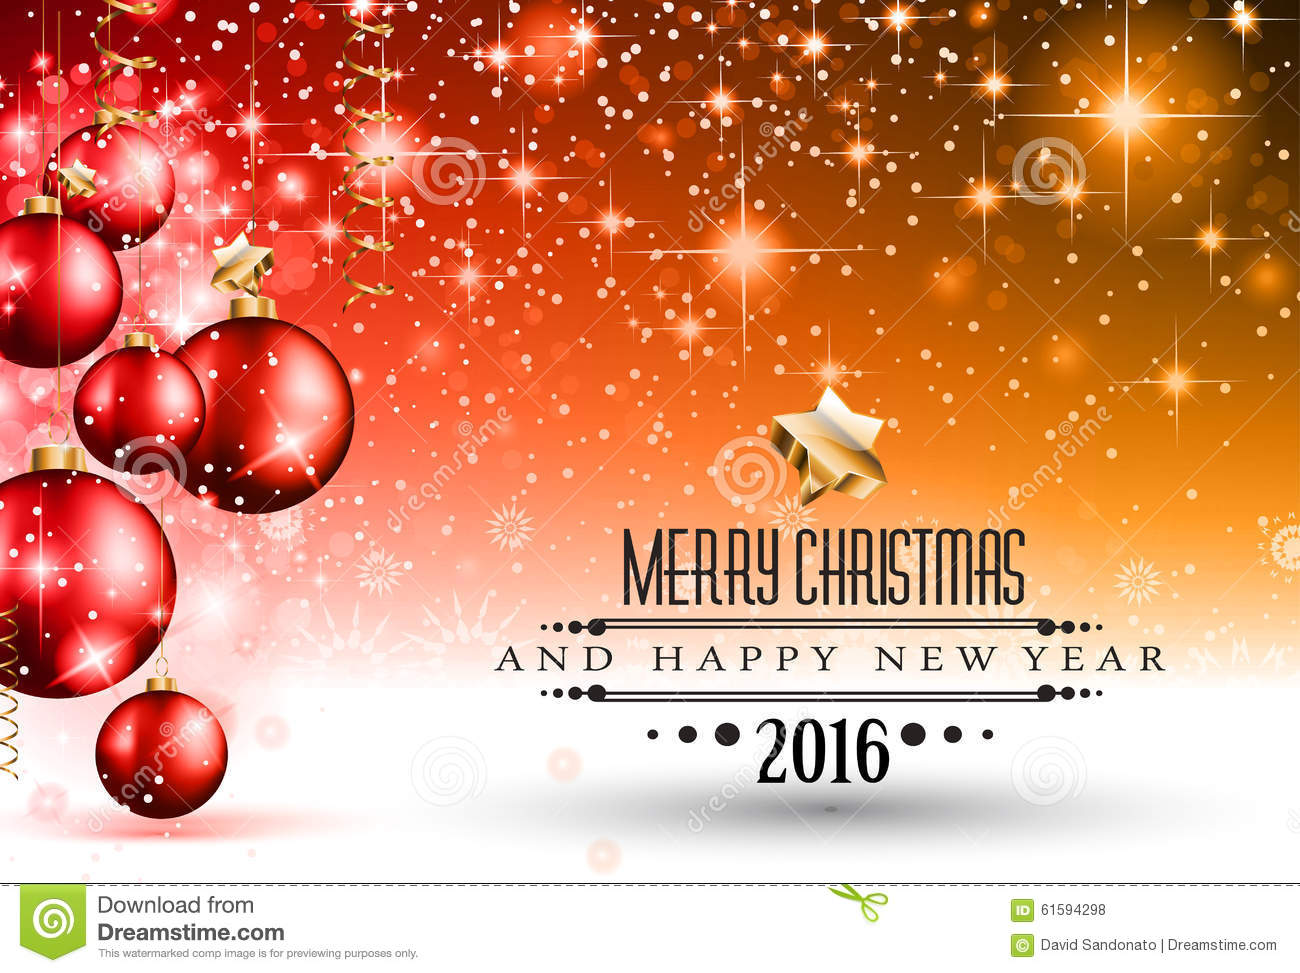 Merry christmas seasonal background for your greeting cards stock merry christmas seasonal background for your greeting cards new years flyer chrstmas dinner invitation posters and do on m4hsunfo